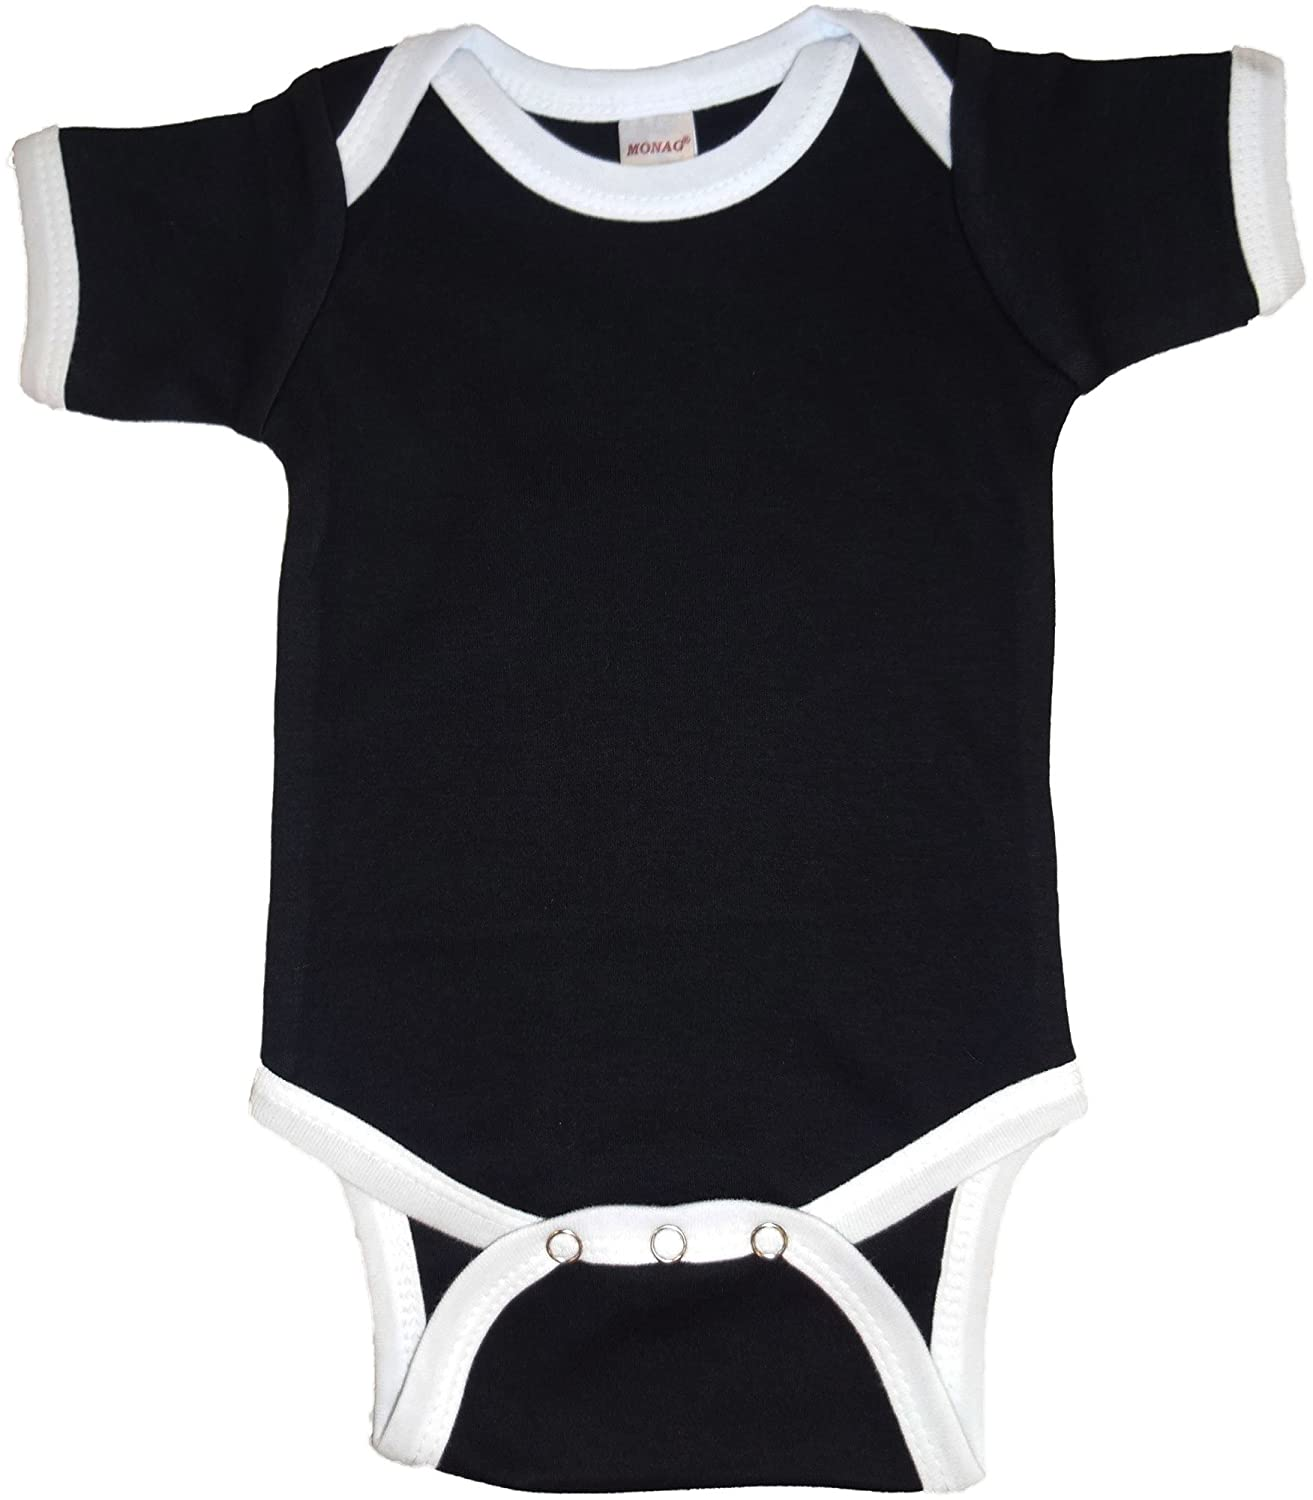 Amazon Black Baby esie With White Trim Infant And Toddler